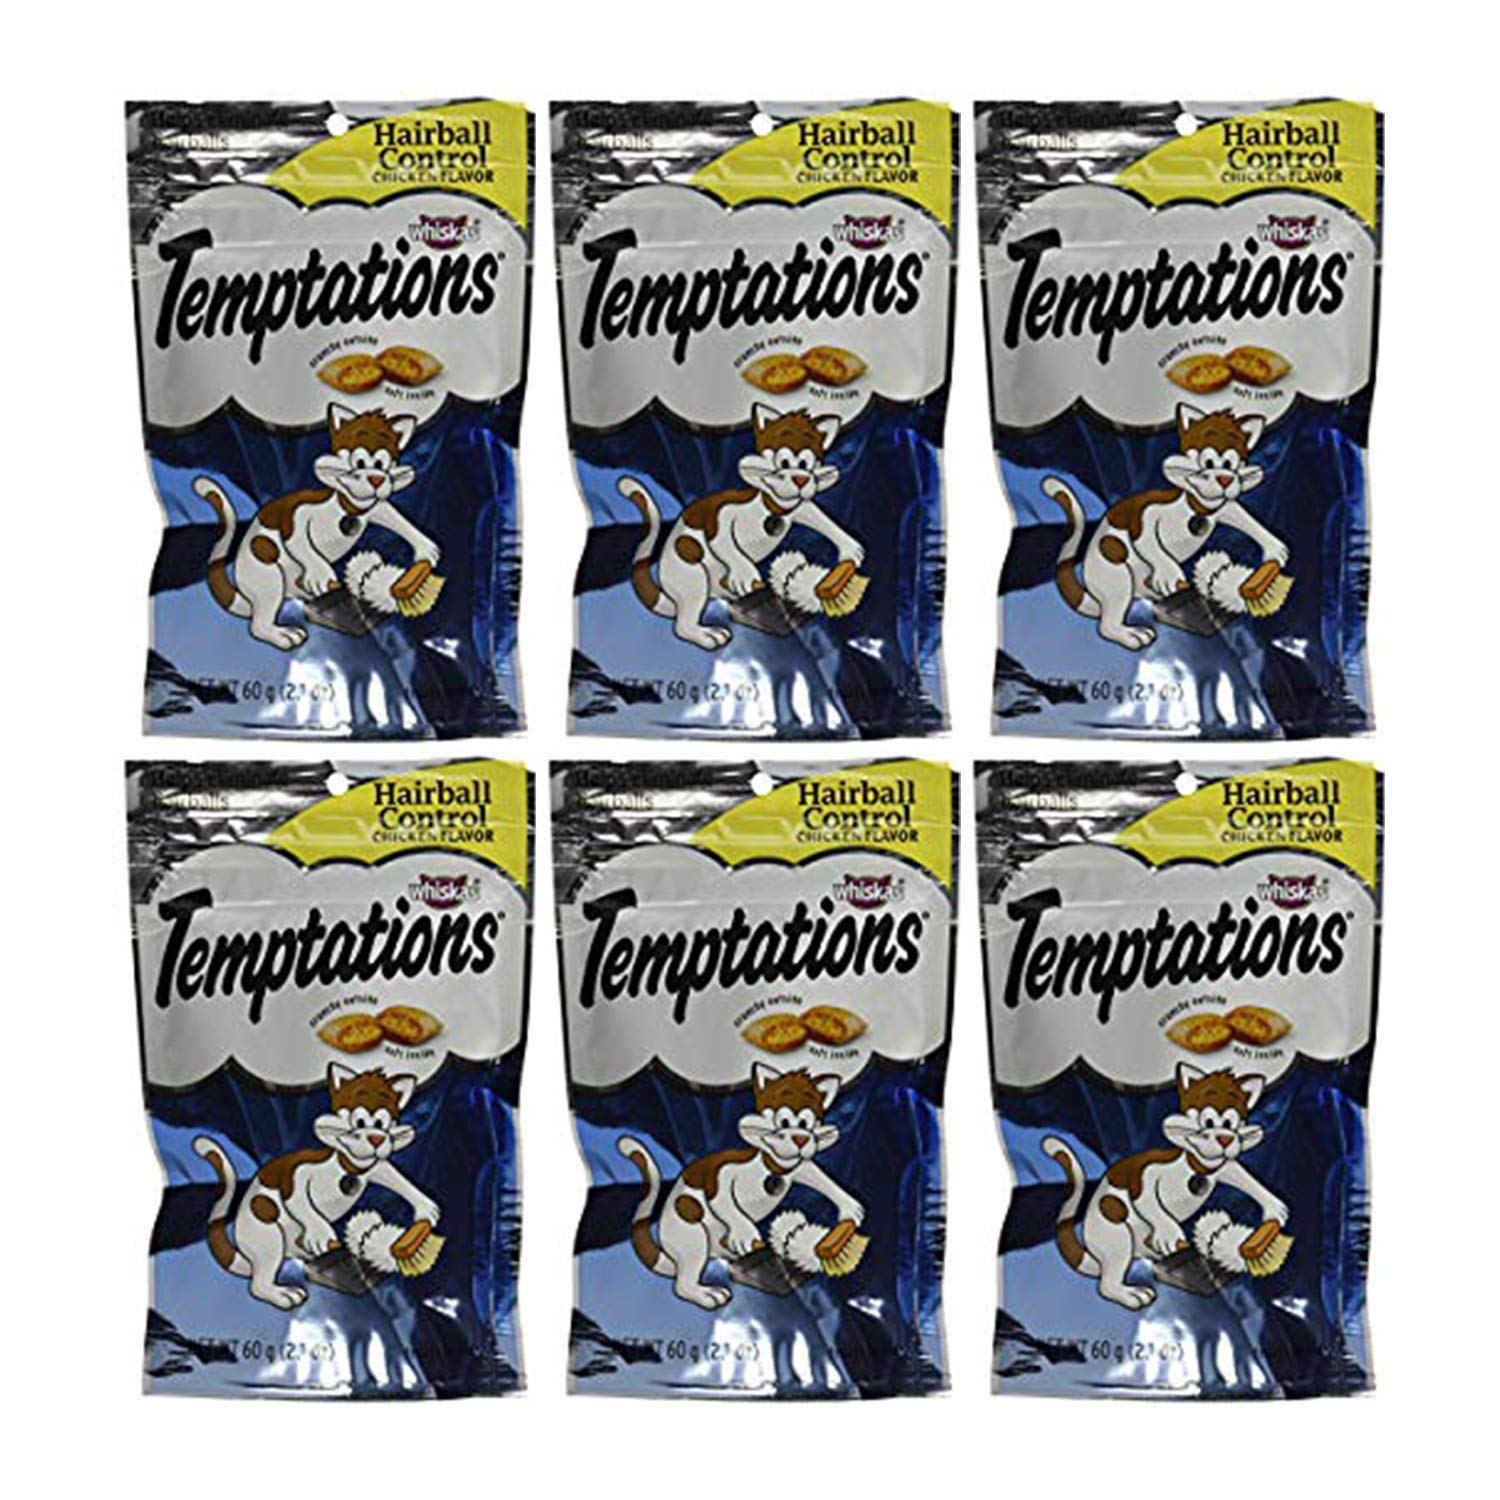 Temptations Hairball Control, Chicken (Pack of 6) by Temptations